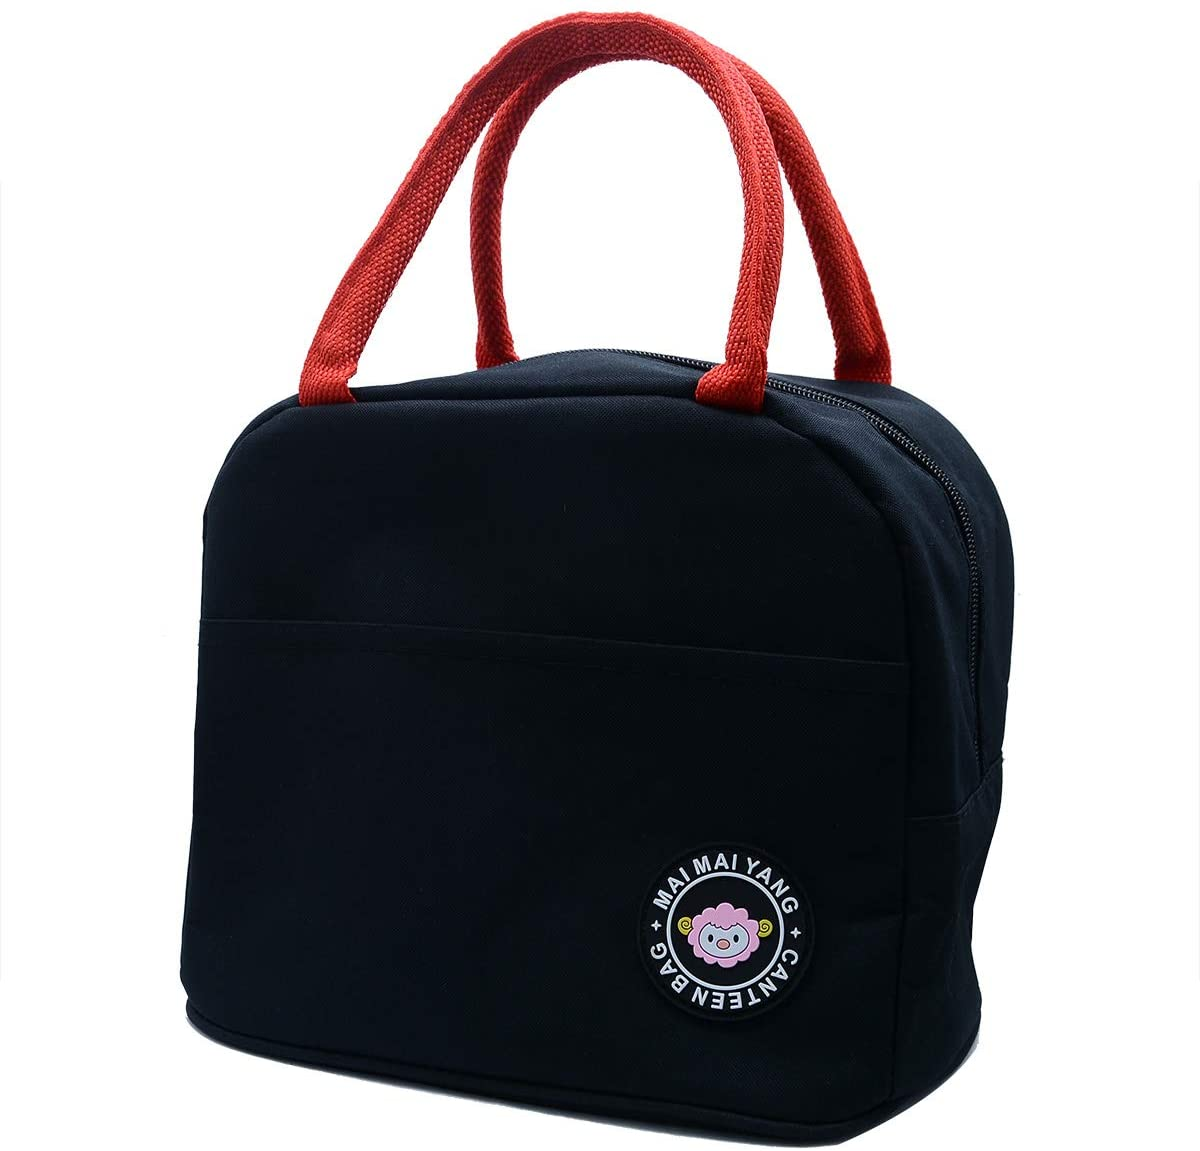 Insulated Lunch Bags for Adults,Men,Women, Waterproof Lunch Totes(Black)